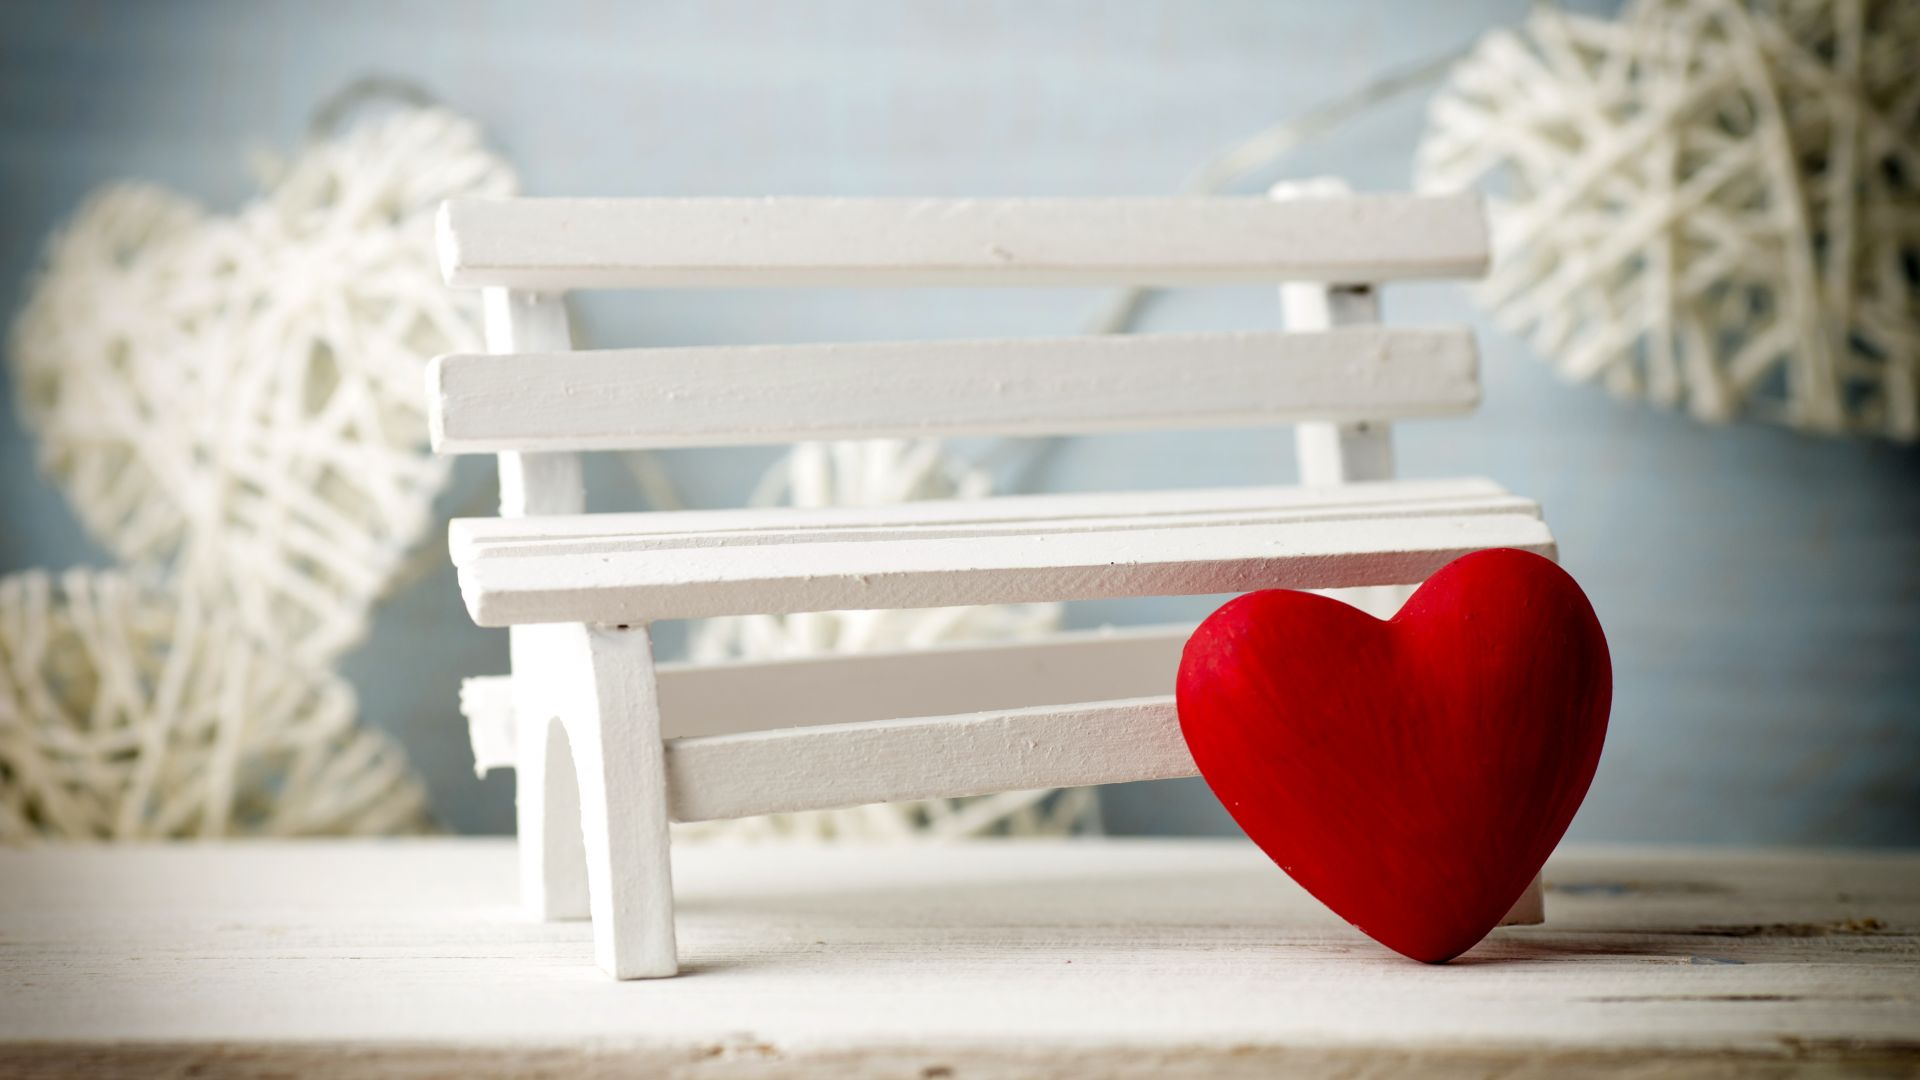 Valentine's Day, heart, decorations, romantic, love, bench